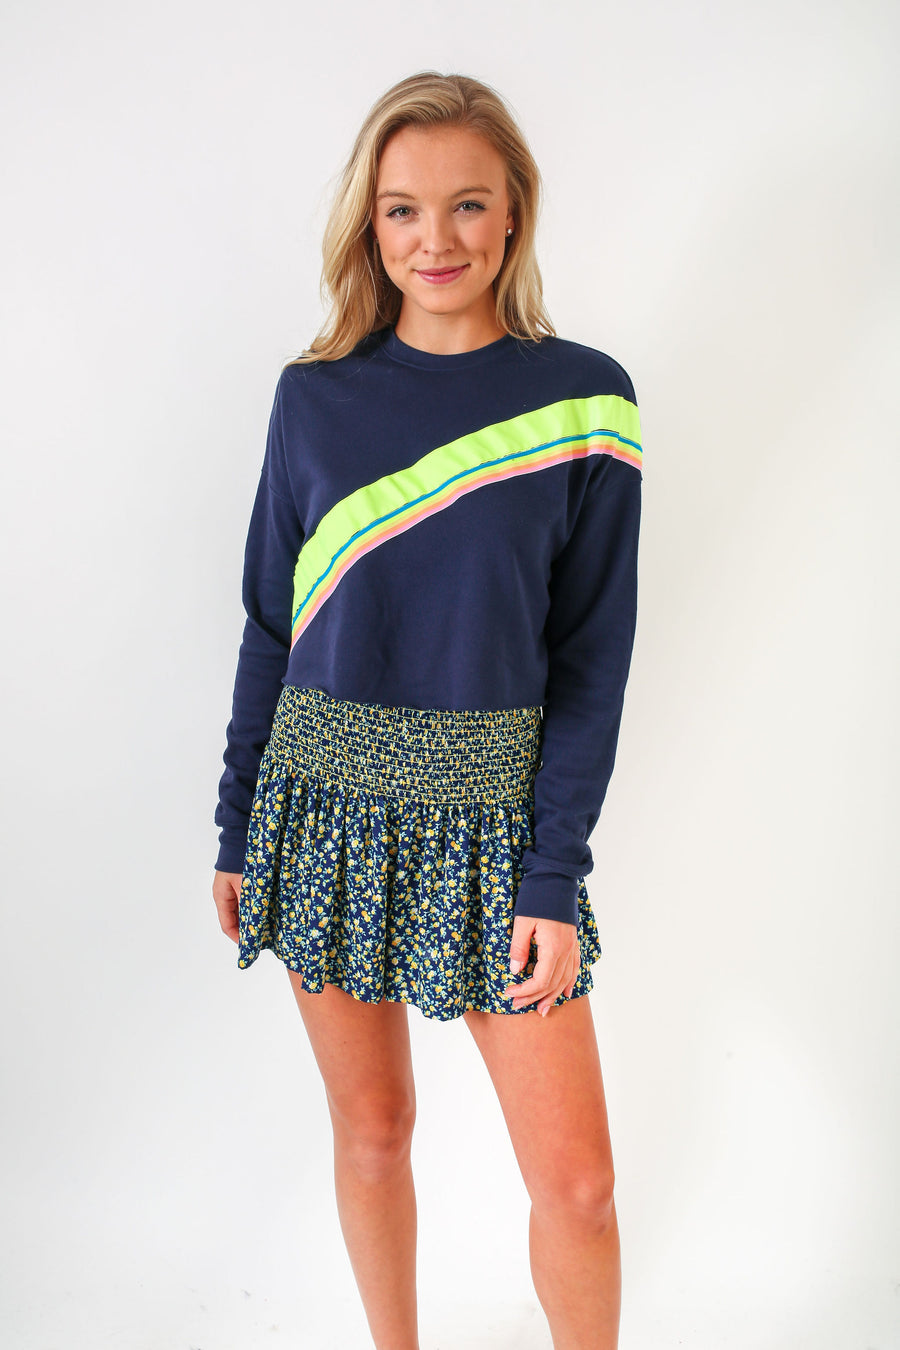 Cropped Sweatshirt Navy w/ neon trim